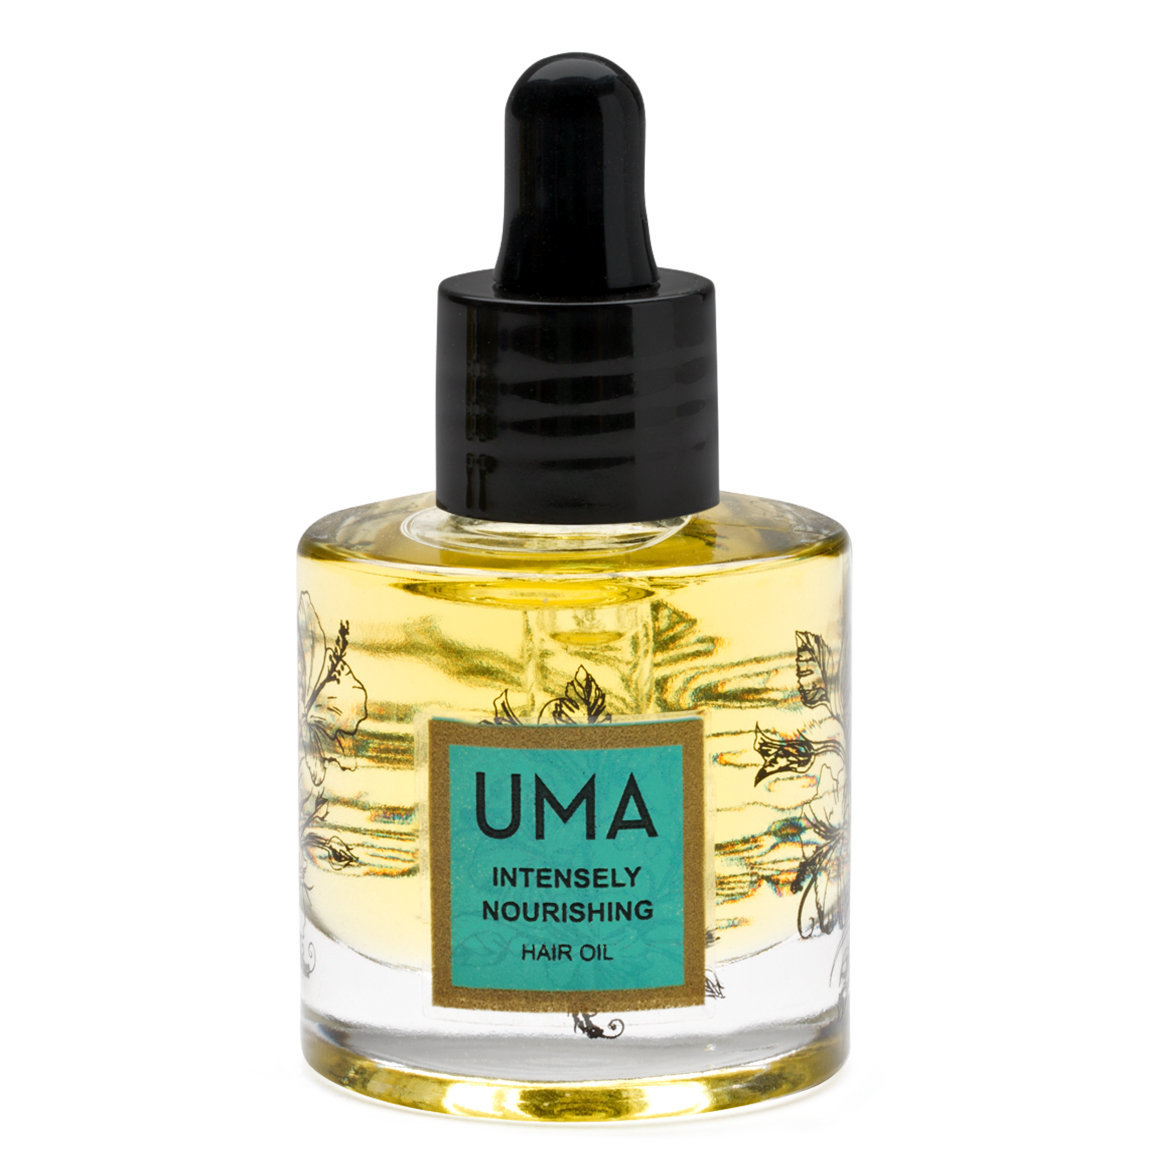 Uma Intensely Nourishing Hair Oil product smear.